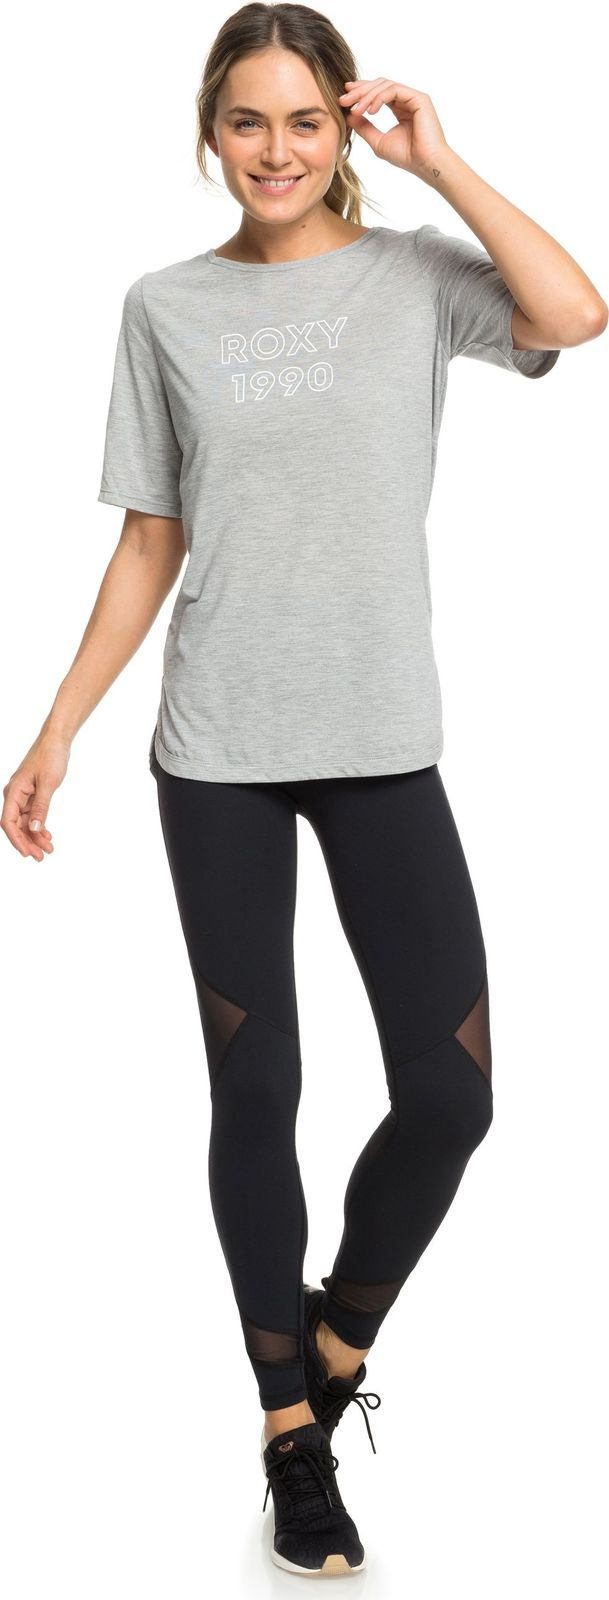 лучшая цена Футболка Roxy Brooklyn Baby Ss Tee